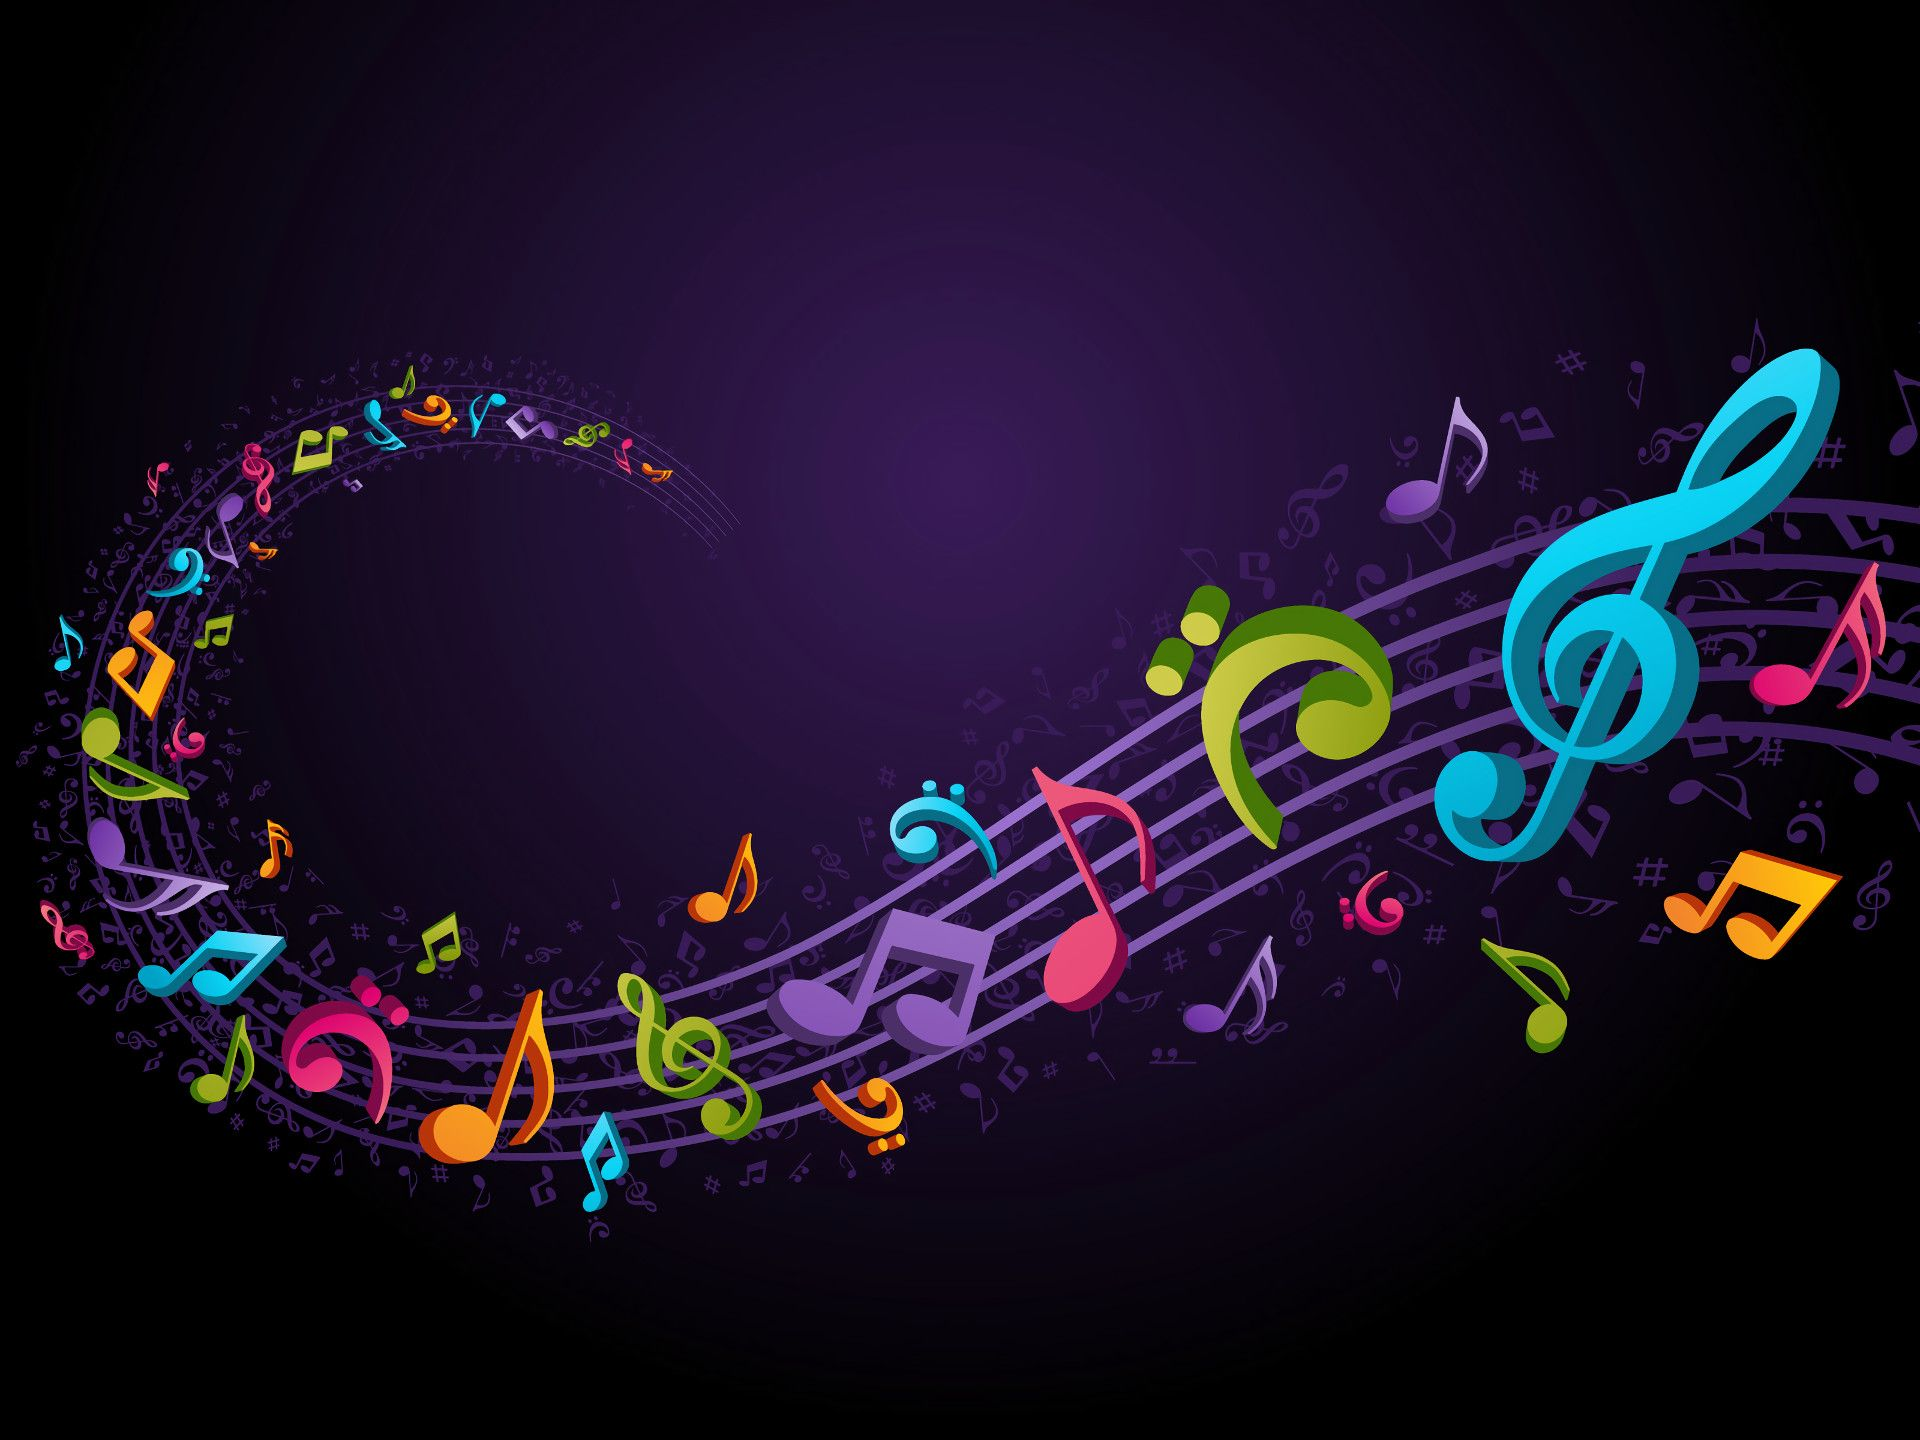 70 Musical Note Wallpapers On Wallpaperplay With Images Music